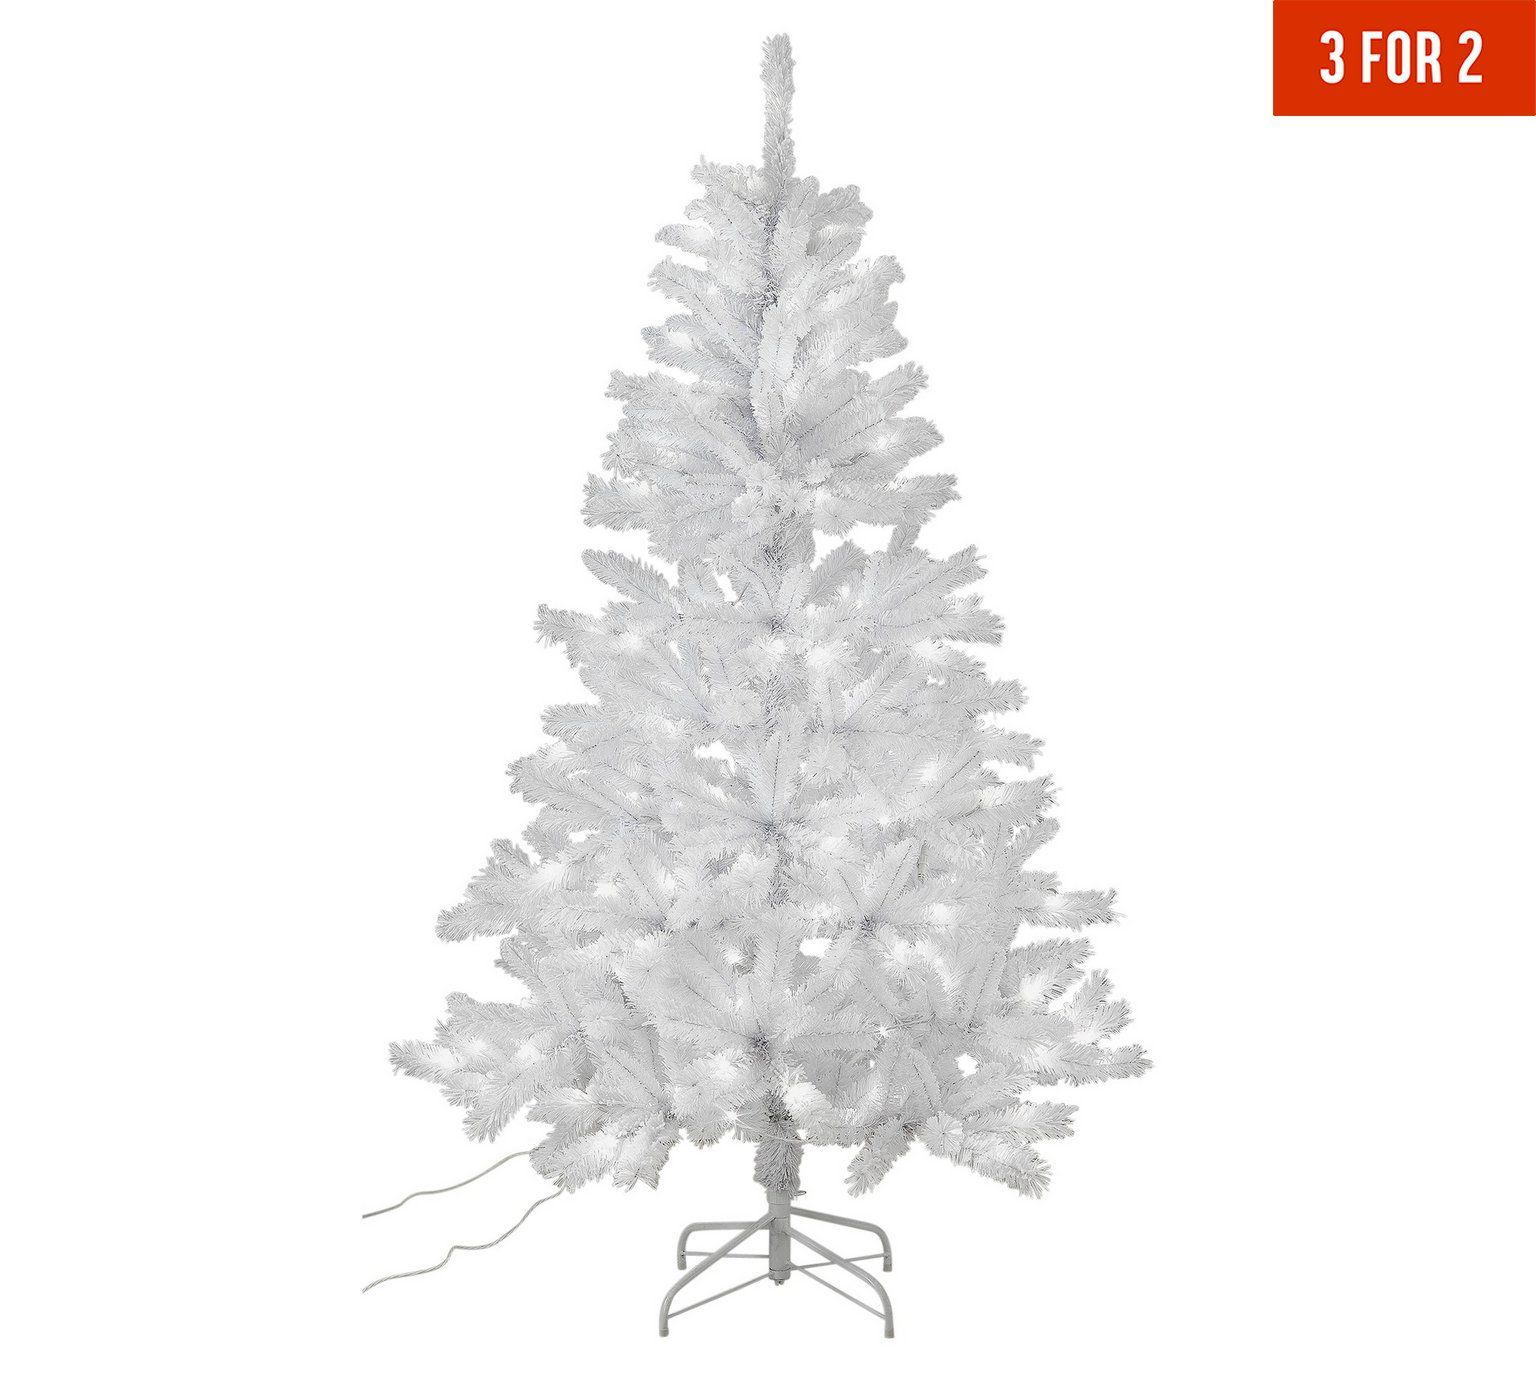 Buy Collection 6ft Pre Lit Christmas Tree White At Argos Co Uk Visit Argos Co Uk To Shop Online Pre Lit Christmas Tree Christmas Tree White Christmas Trees